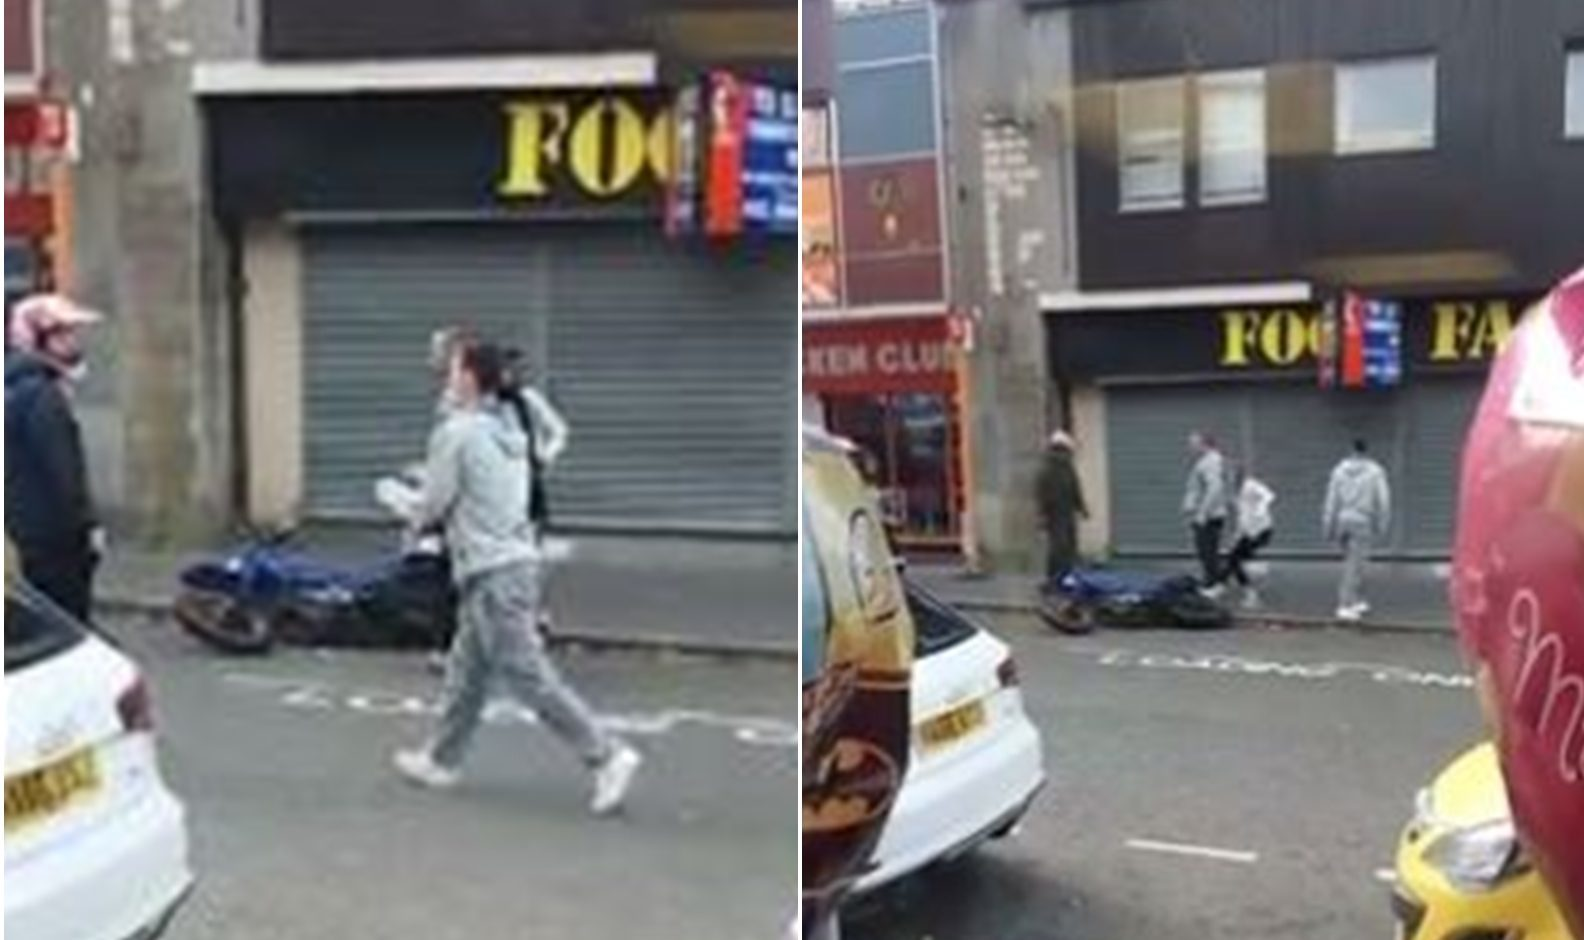 Clips from the incident on Lochee High Street, taken from social media.